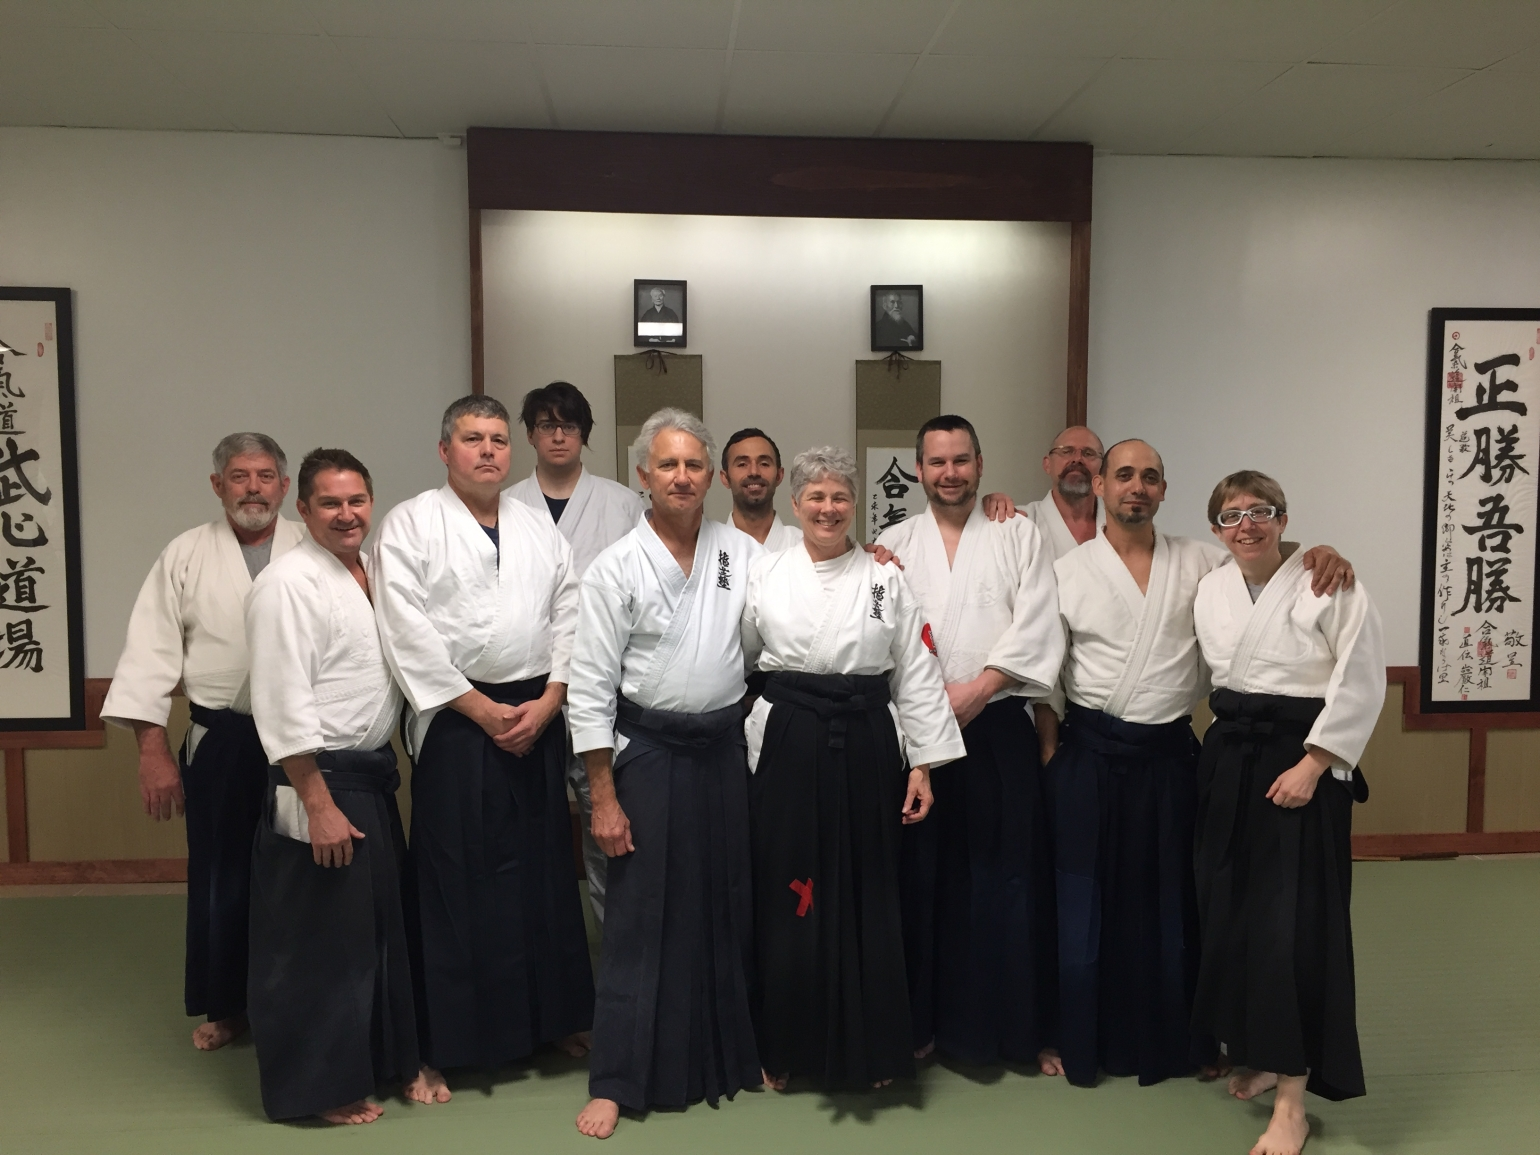 group-pic-at-messores-sensei-seminar-2-18-17